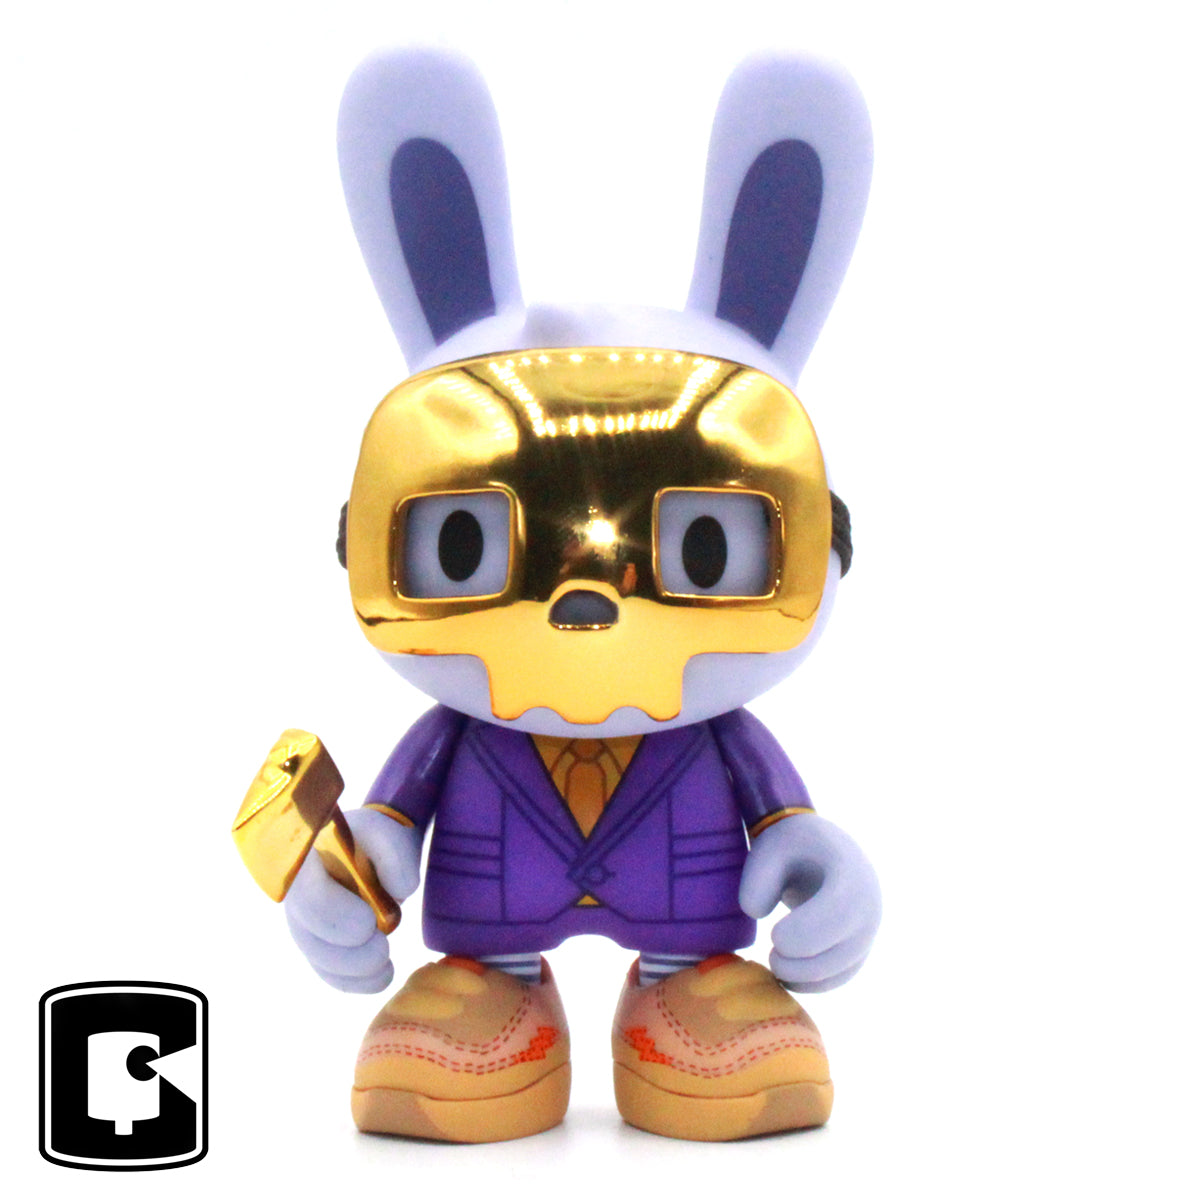 Golden Guggimon Janky by Guggimon X Superplastic